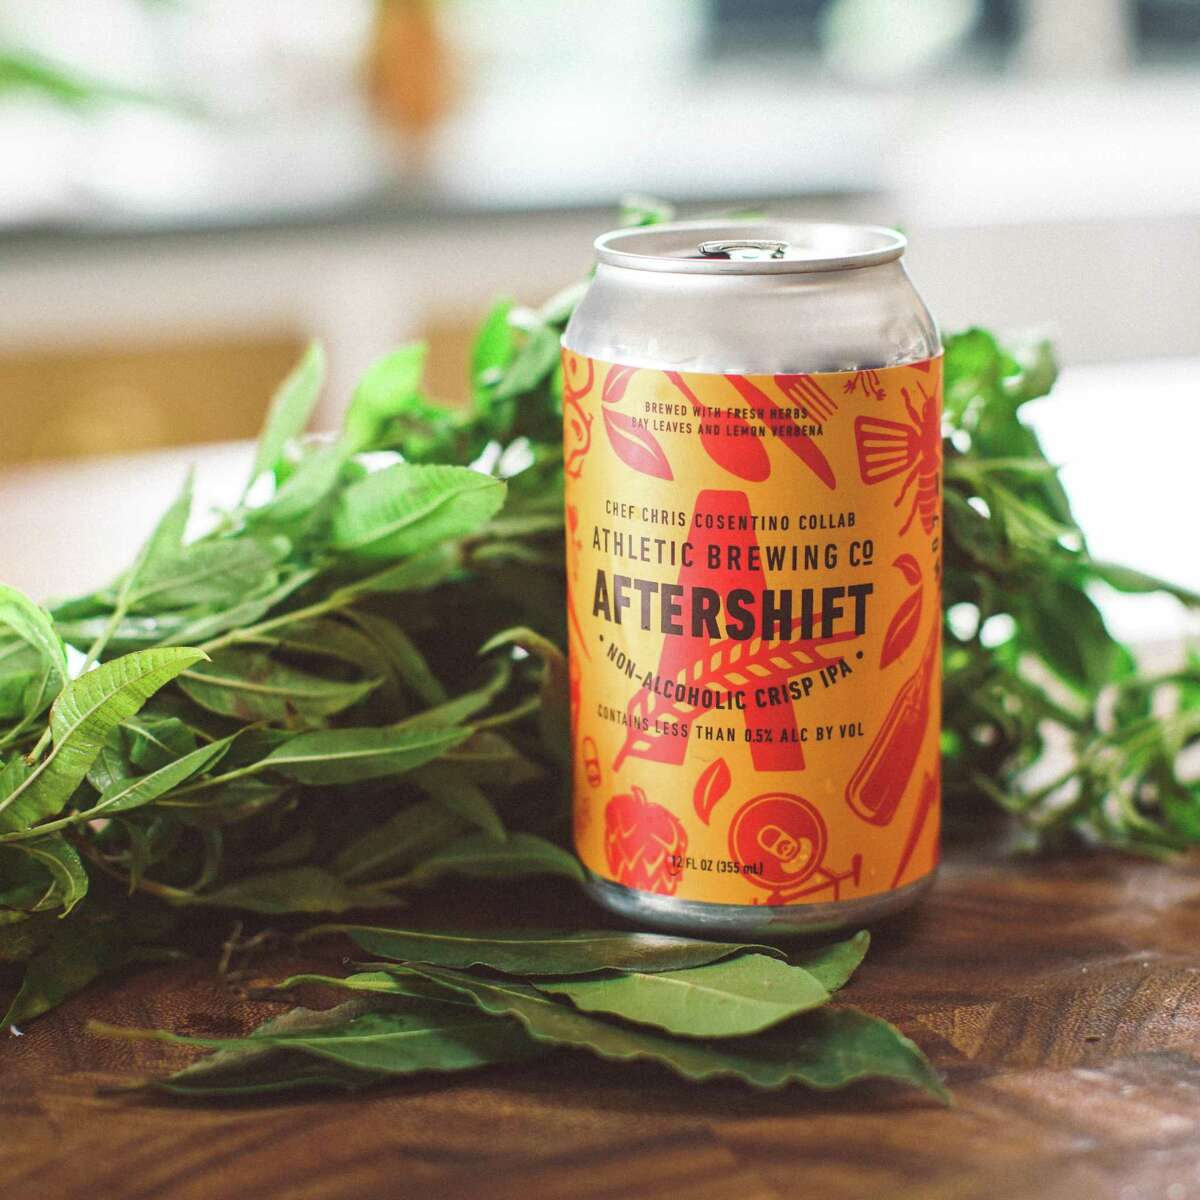 Chef Chris Cosentino collaborated with Athletic Brewing Company to launch their new nonalcoholic IPA, AfterShift. Athletic Brewing is Connecticut's only non-alcoholic brewery and will have the new IPA available in its Stratford taproom for a limited release, beginning Nov. 16. According to Athletic Brewing's announcement, AfterShift is